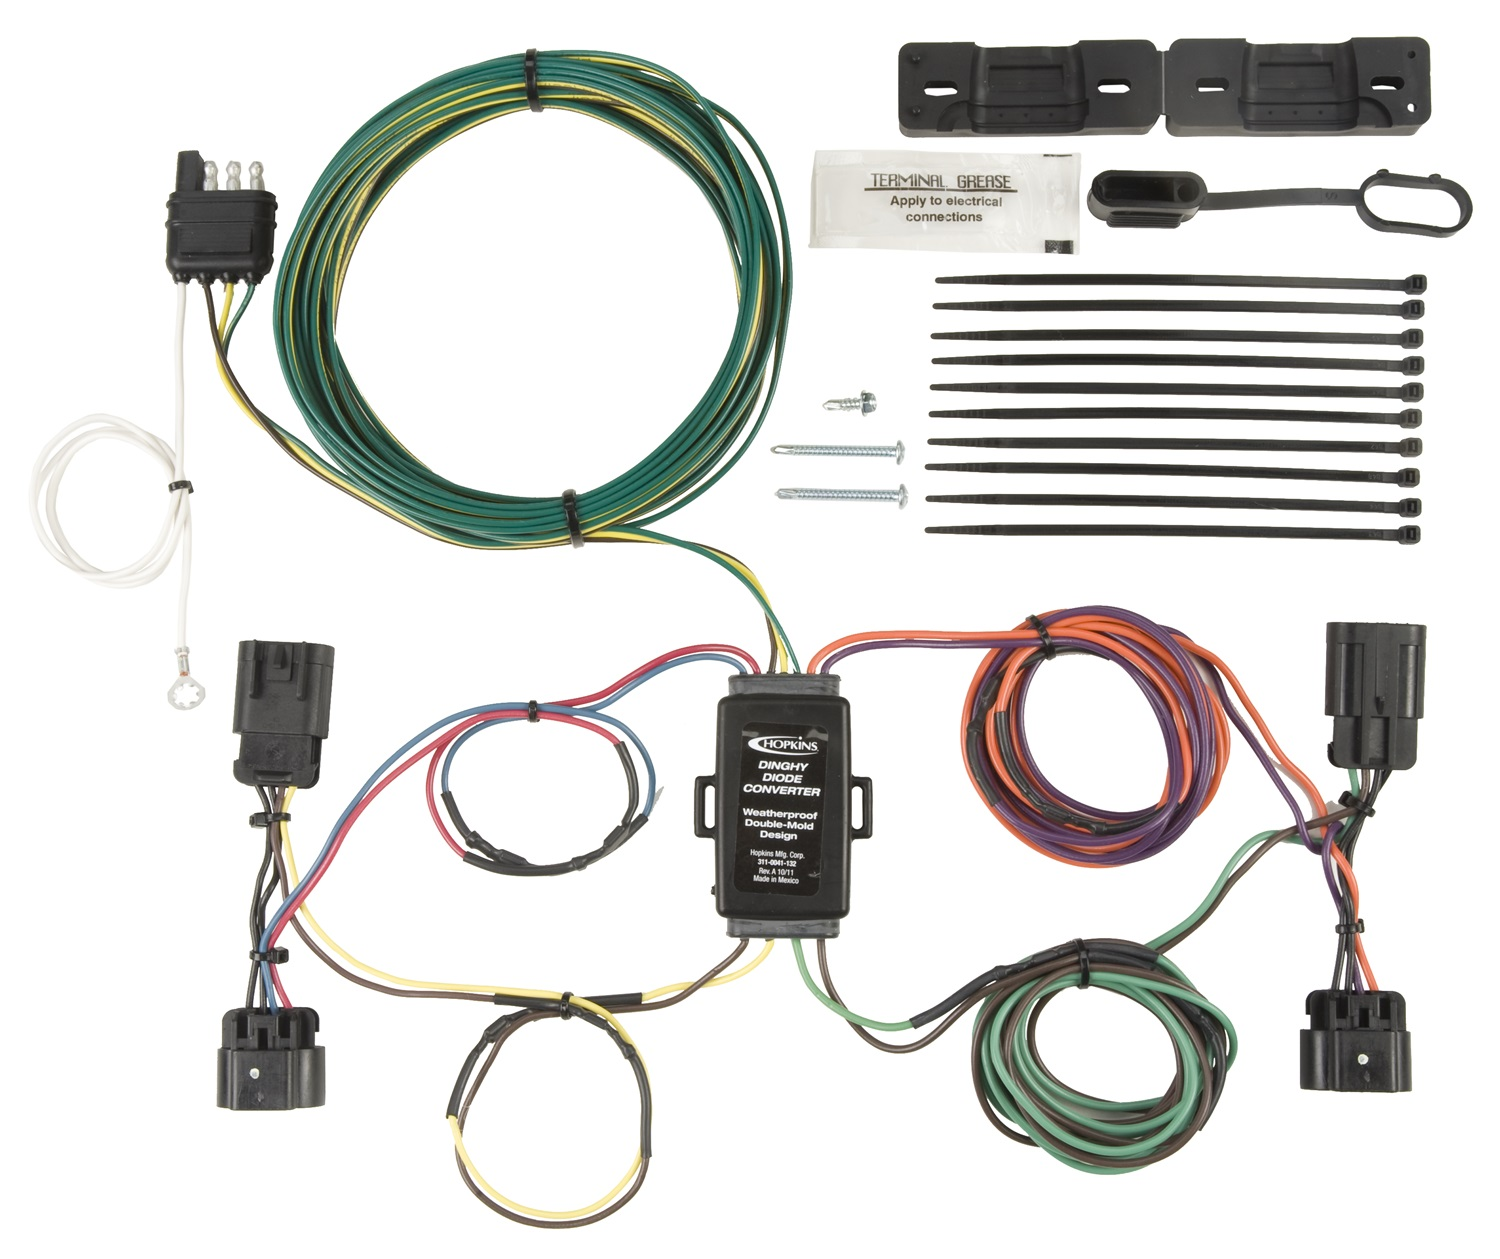 hight resolution of details about hopkins towing solution 56108 plug in simple vehicle to trailer wiring harness